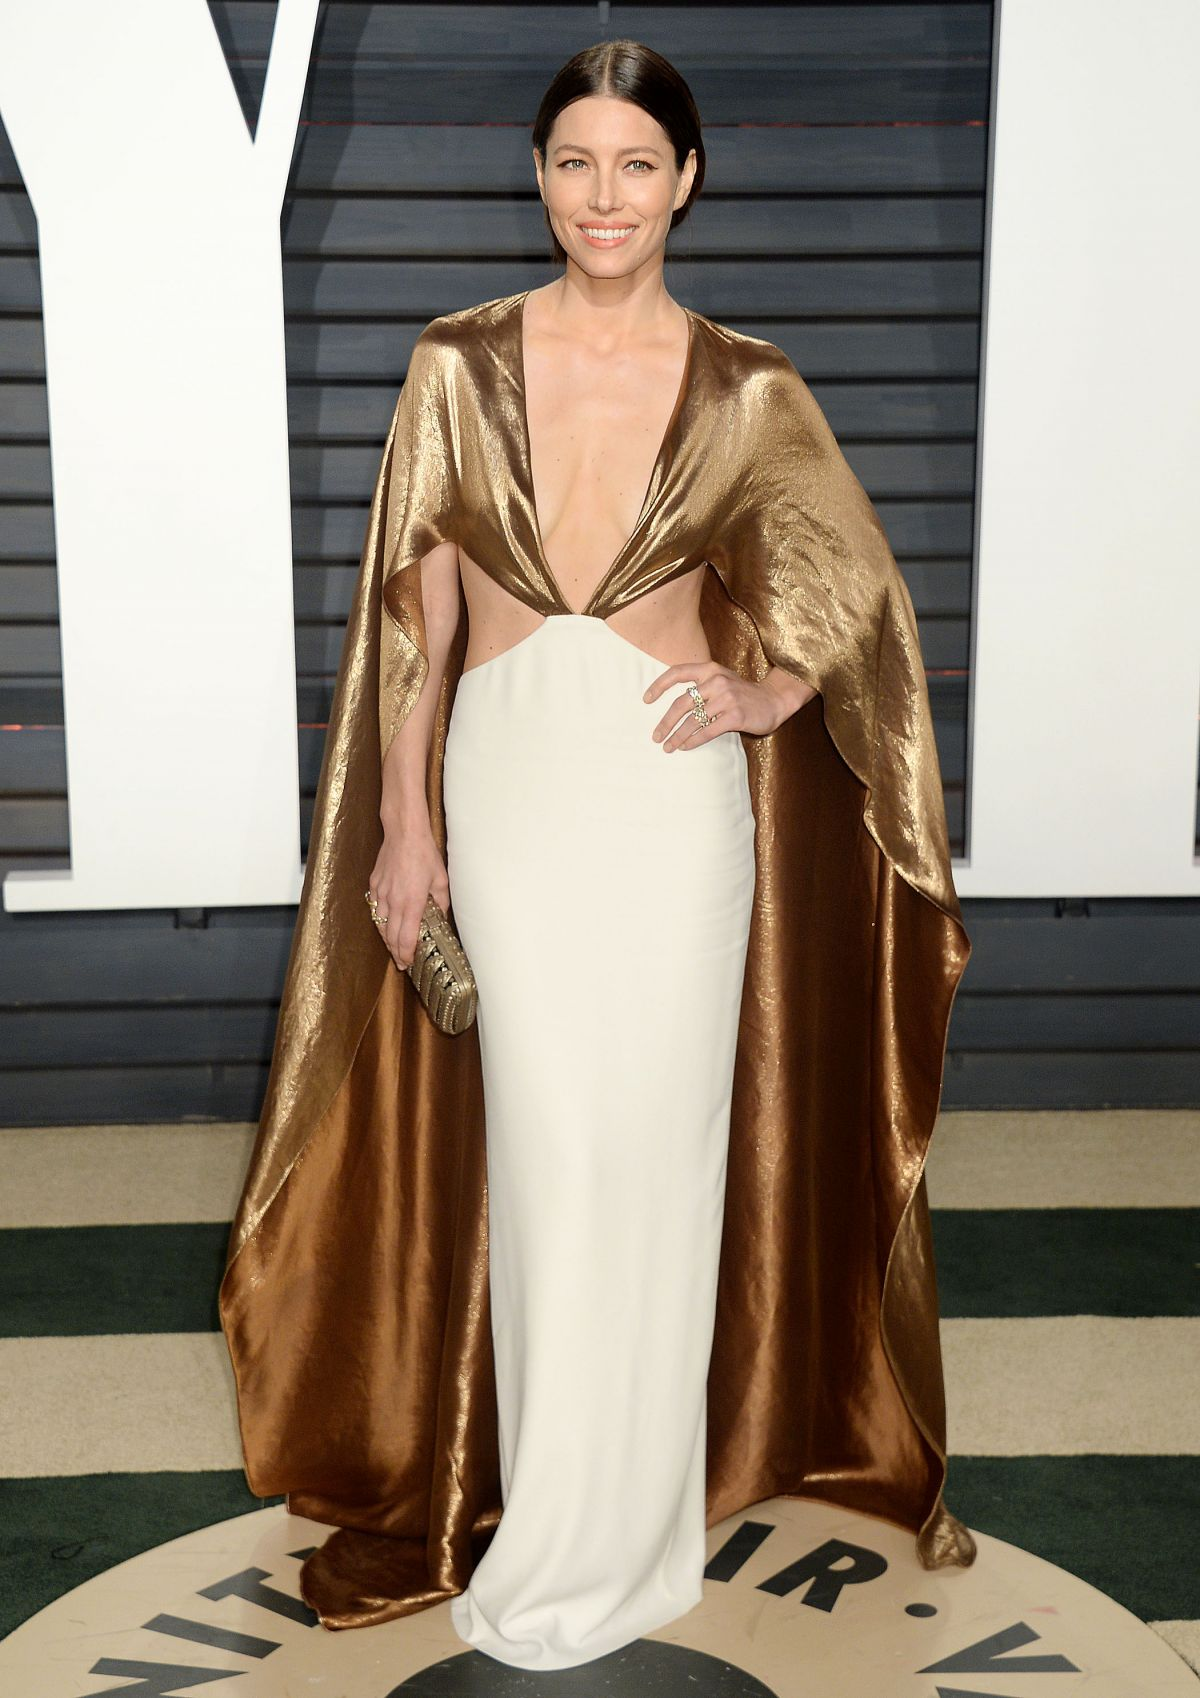 JESSICA BIEL at 2017 Vanity Fair Oscar Party in Beverly Hills 02/26/2017